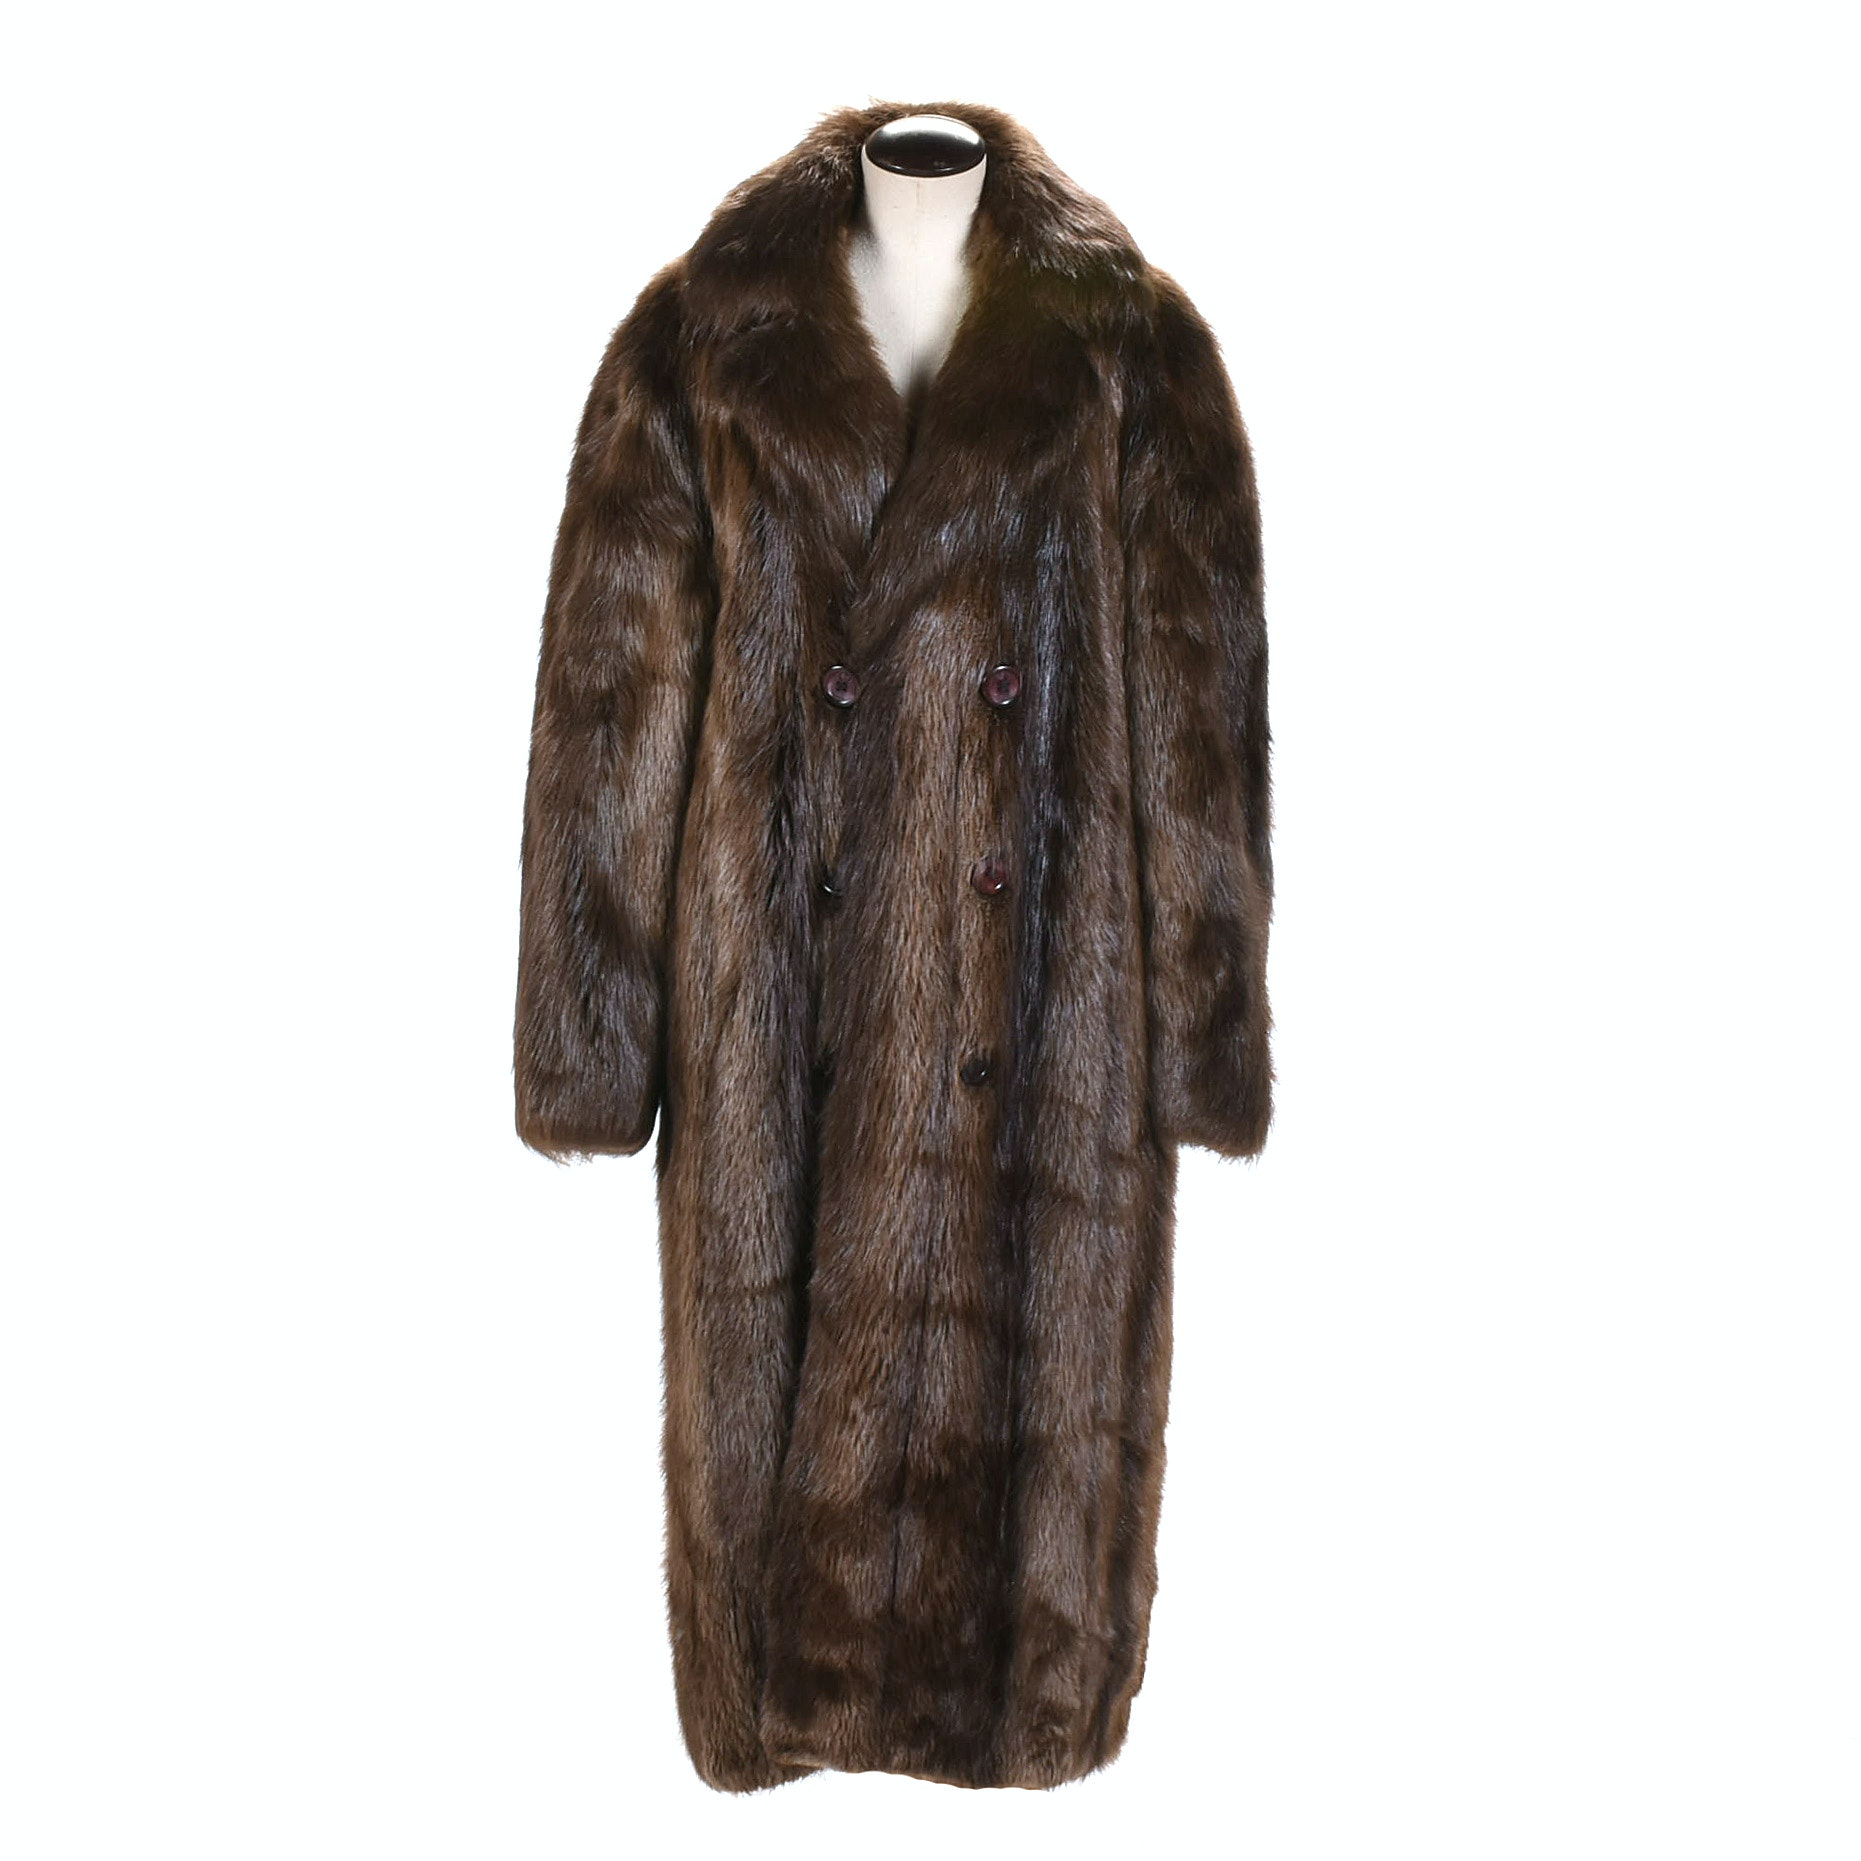 Double Breasted Beaver Fur Coat by Renown Furriers Carol and Irwin Ware